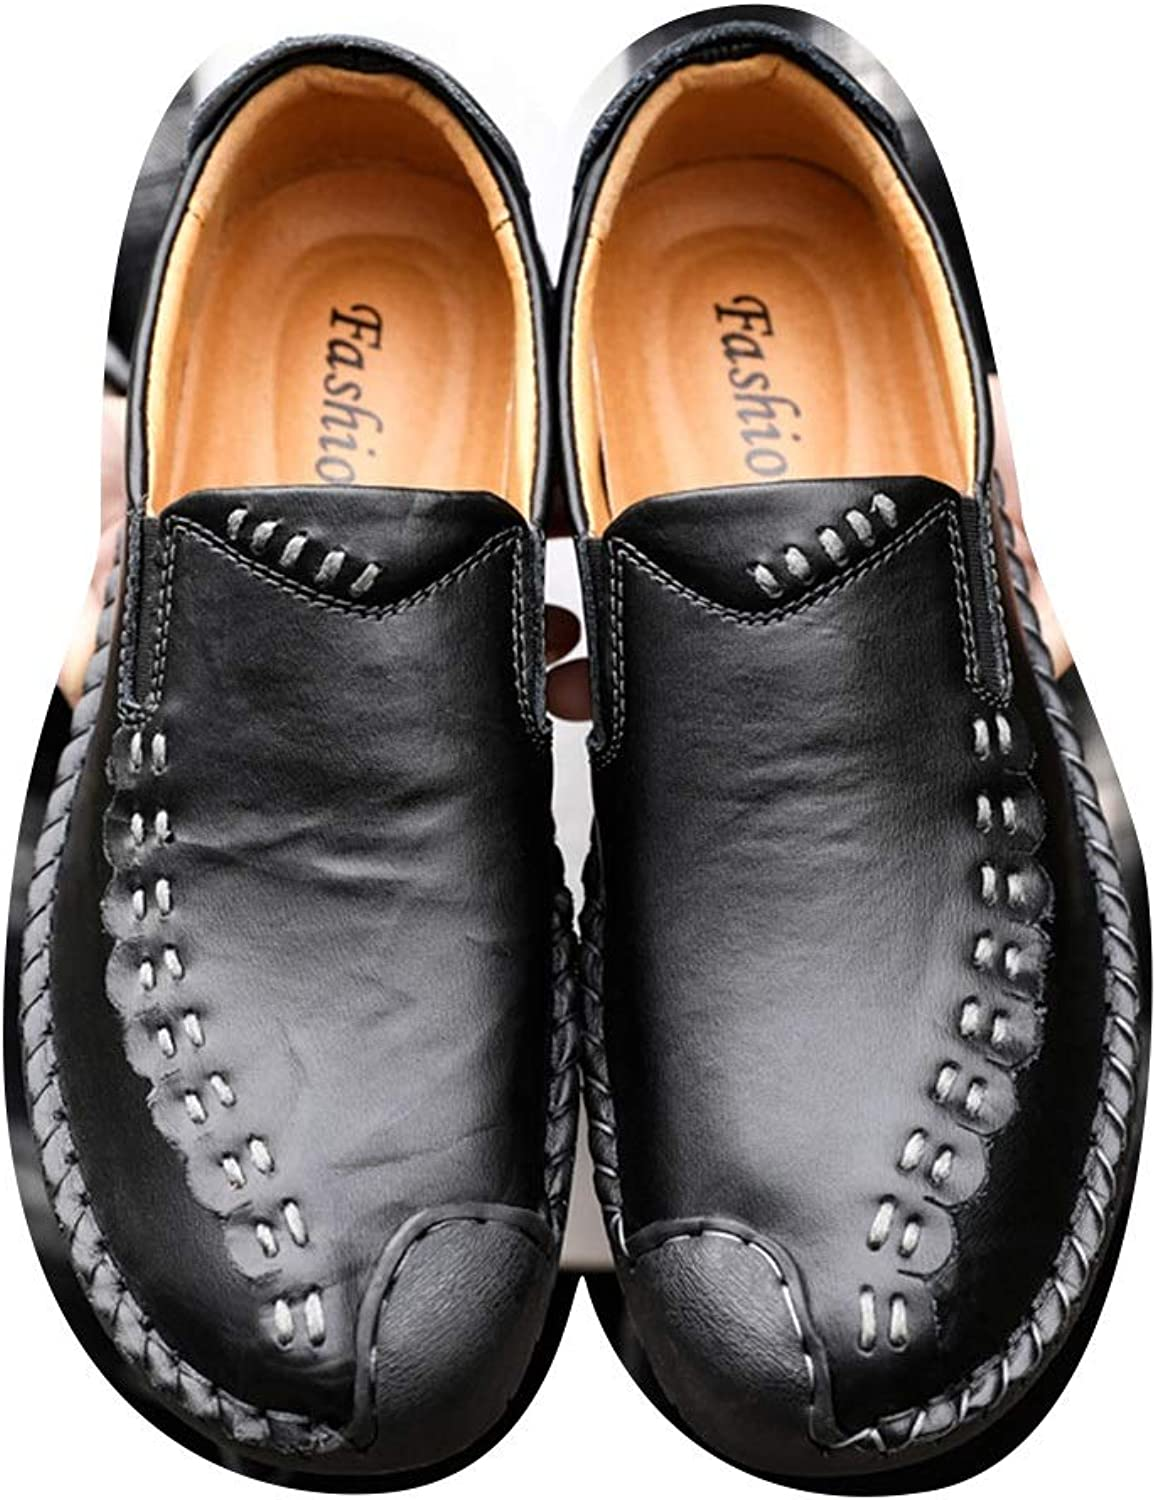 Men's Leather Cowhide Men's shoes Loafers Leather shoes Casual shoes Men's Trend Peas shoes Cricket shoes (color   Black, Size   45)